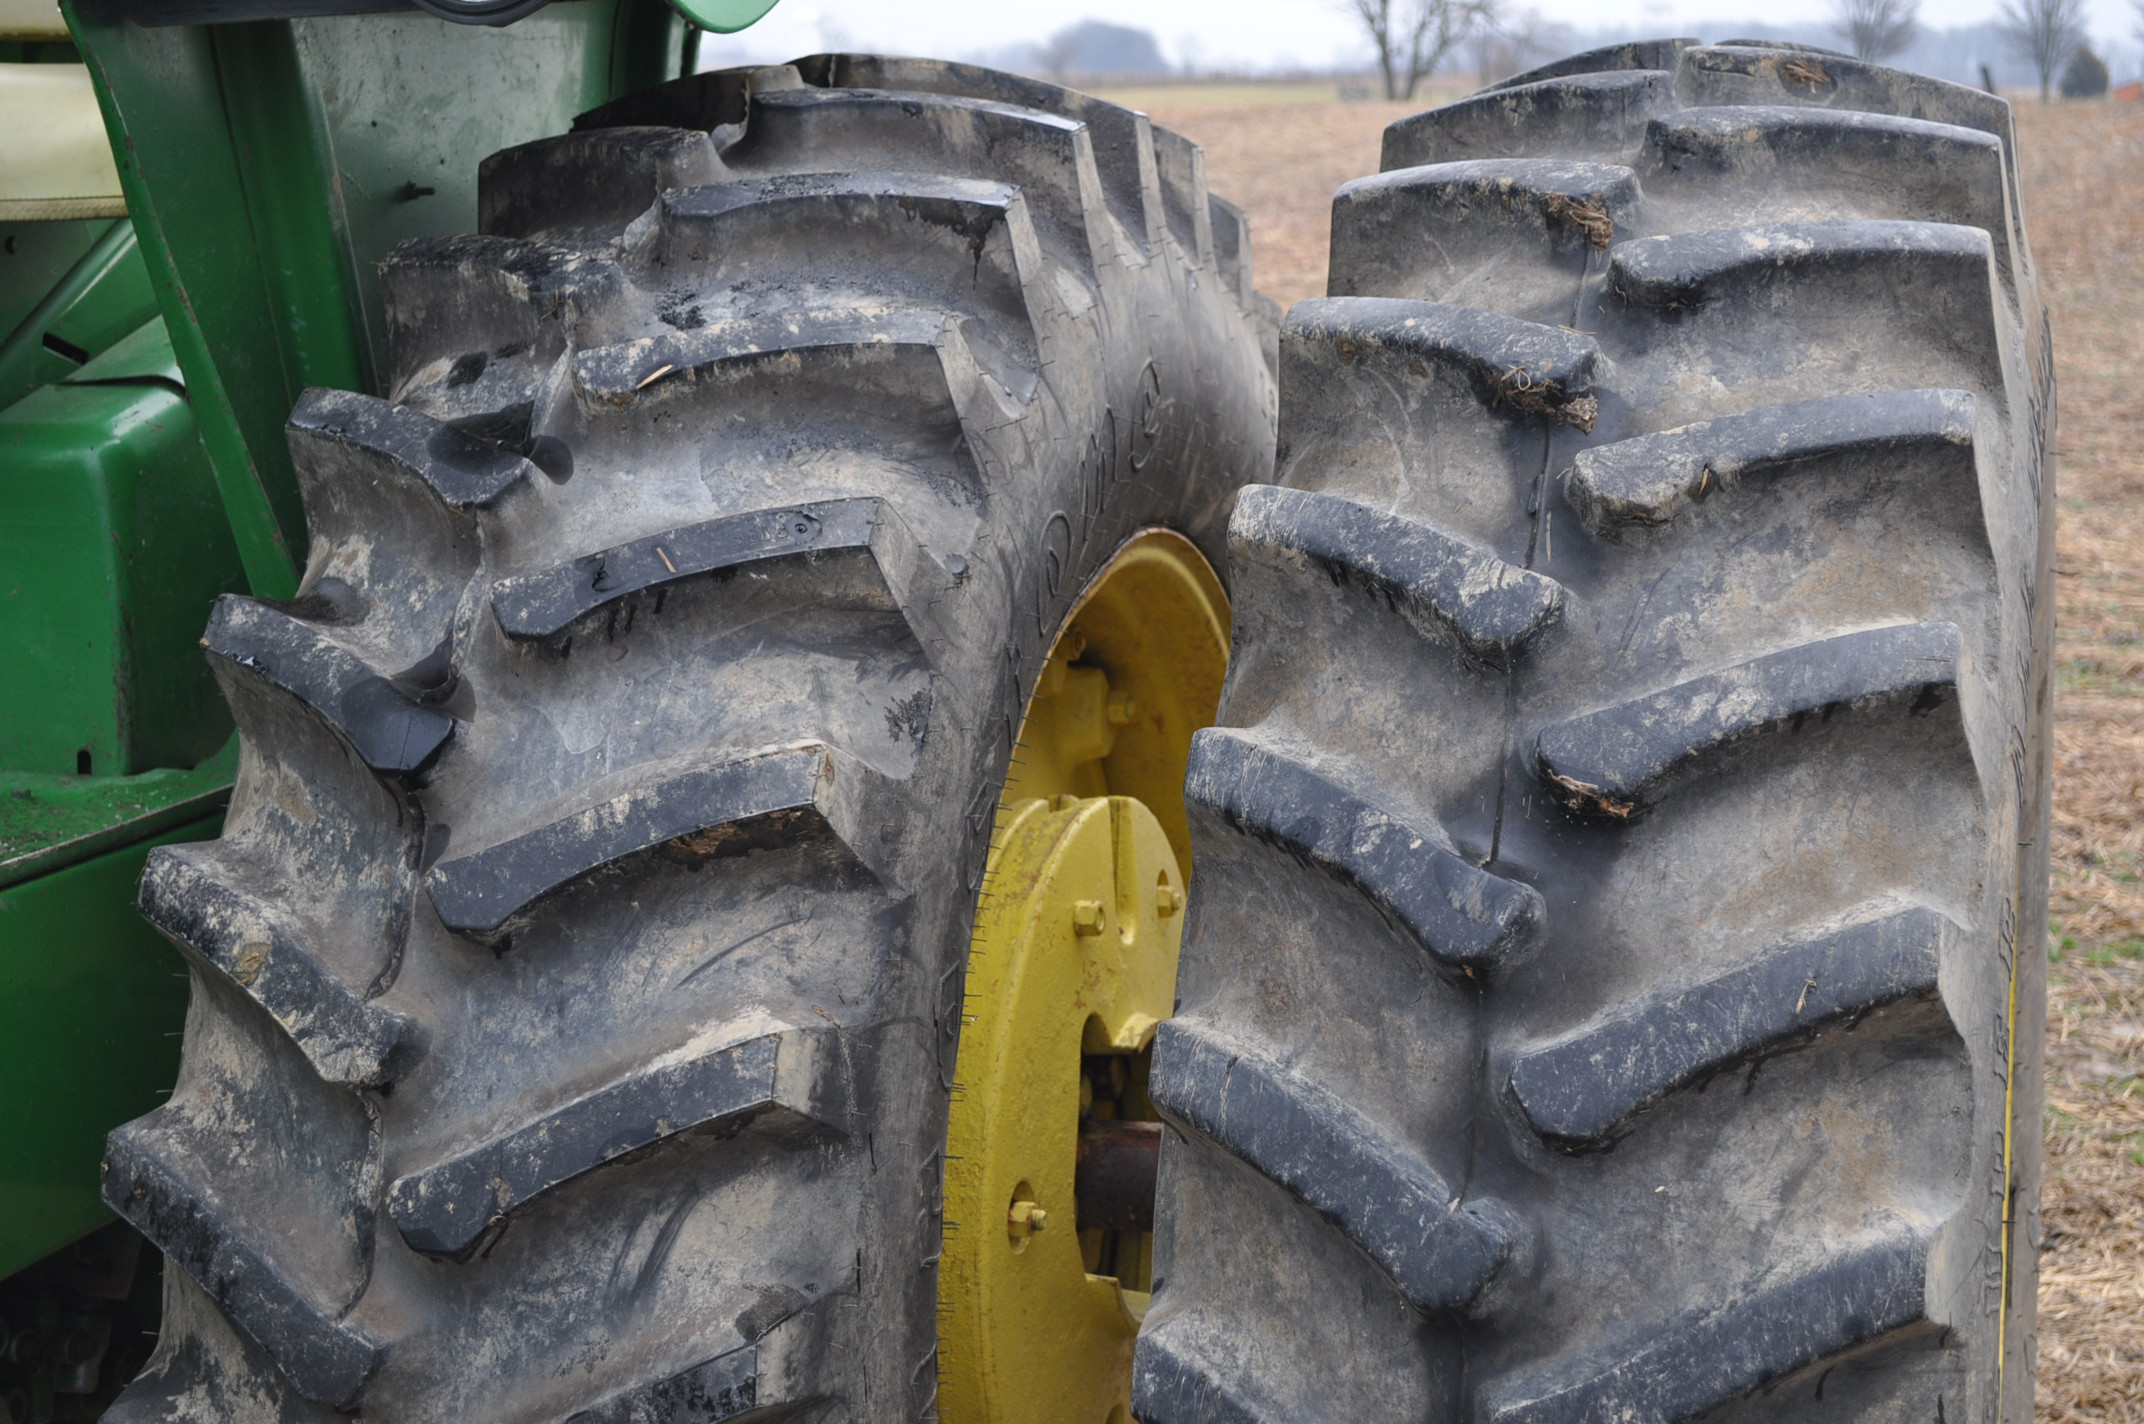 John Deere 4320 tractor, diesel, 18.4-38 duals, 10.00-16 wide front, Syncro, 2 hyd remotes, 540/1000 - Image 6 of 20